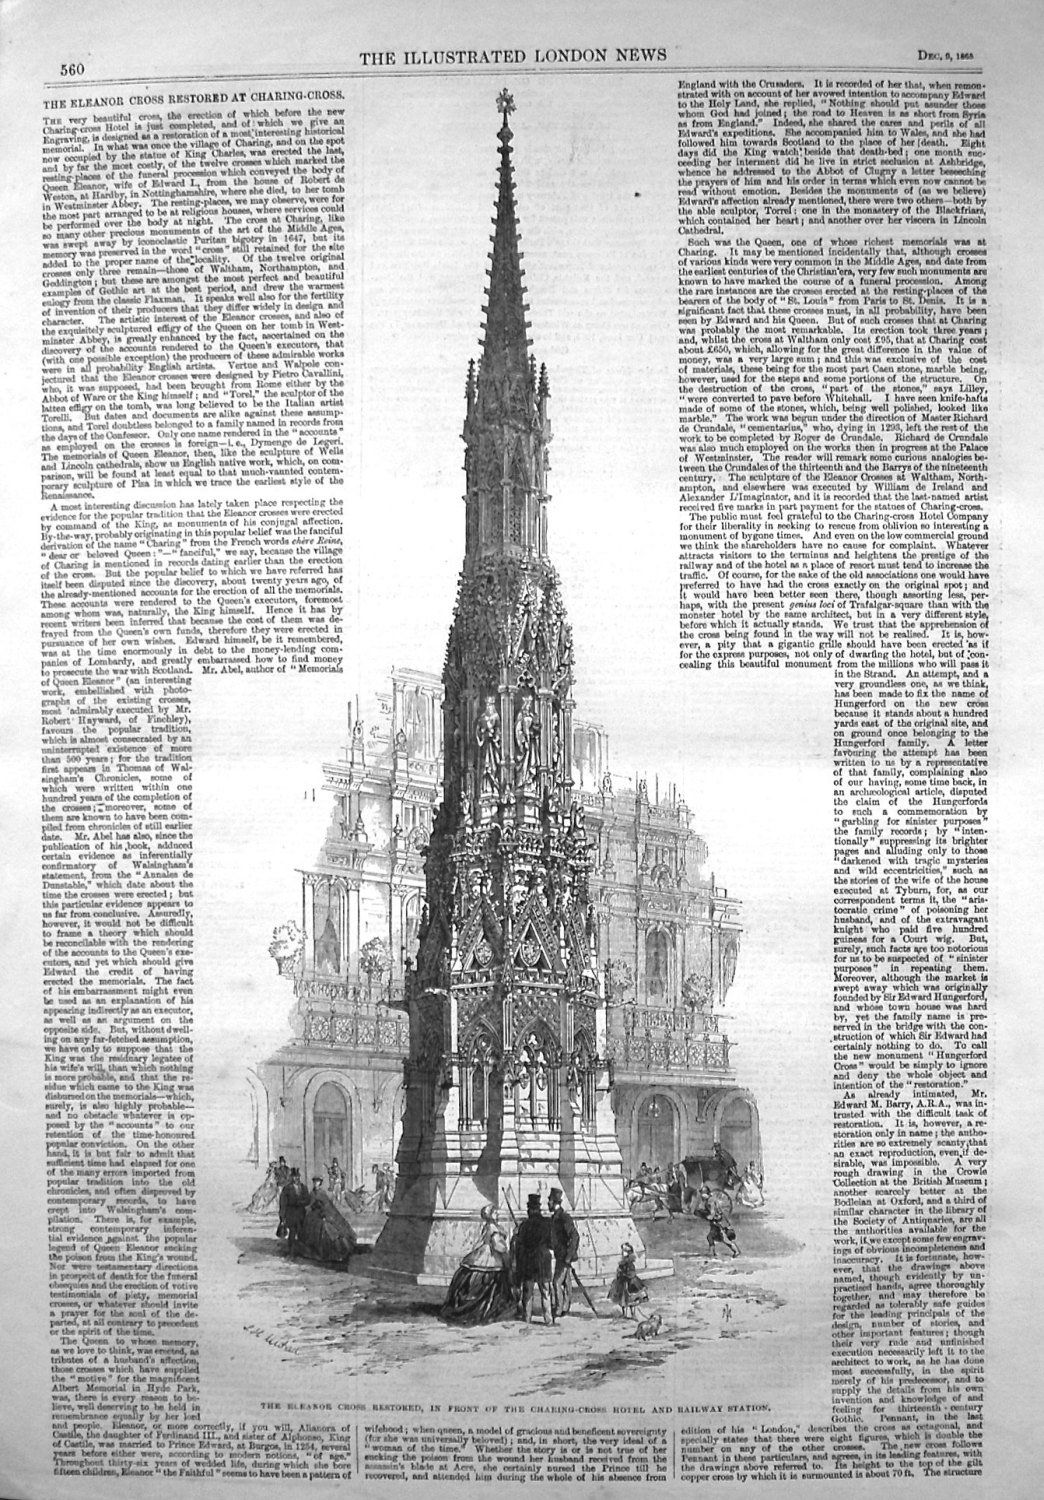 The Eleanor Cross Restored at Charing-Cross. 1865